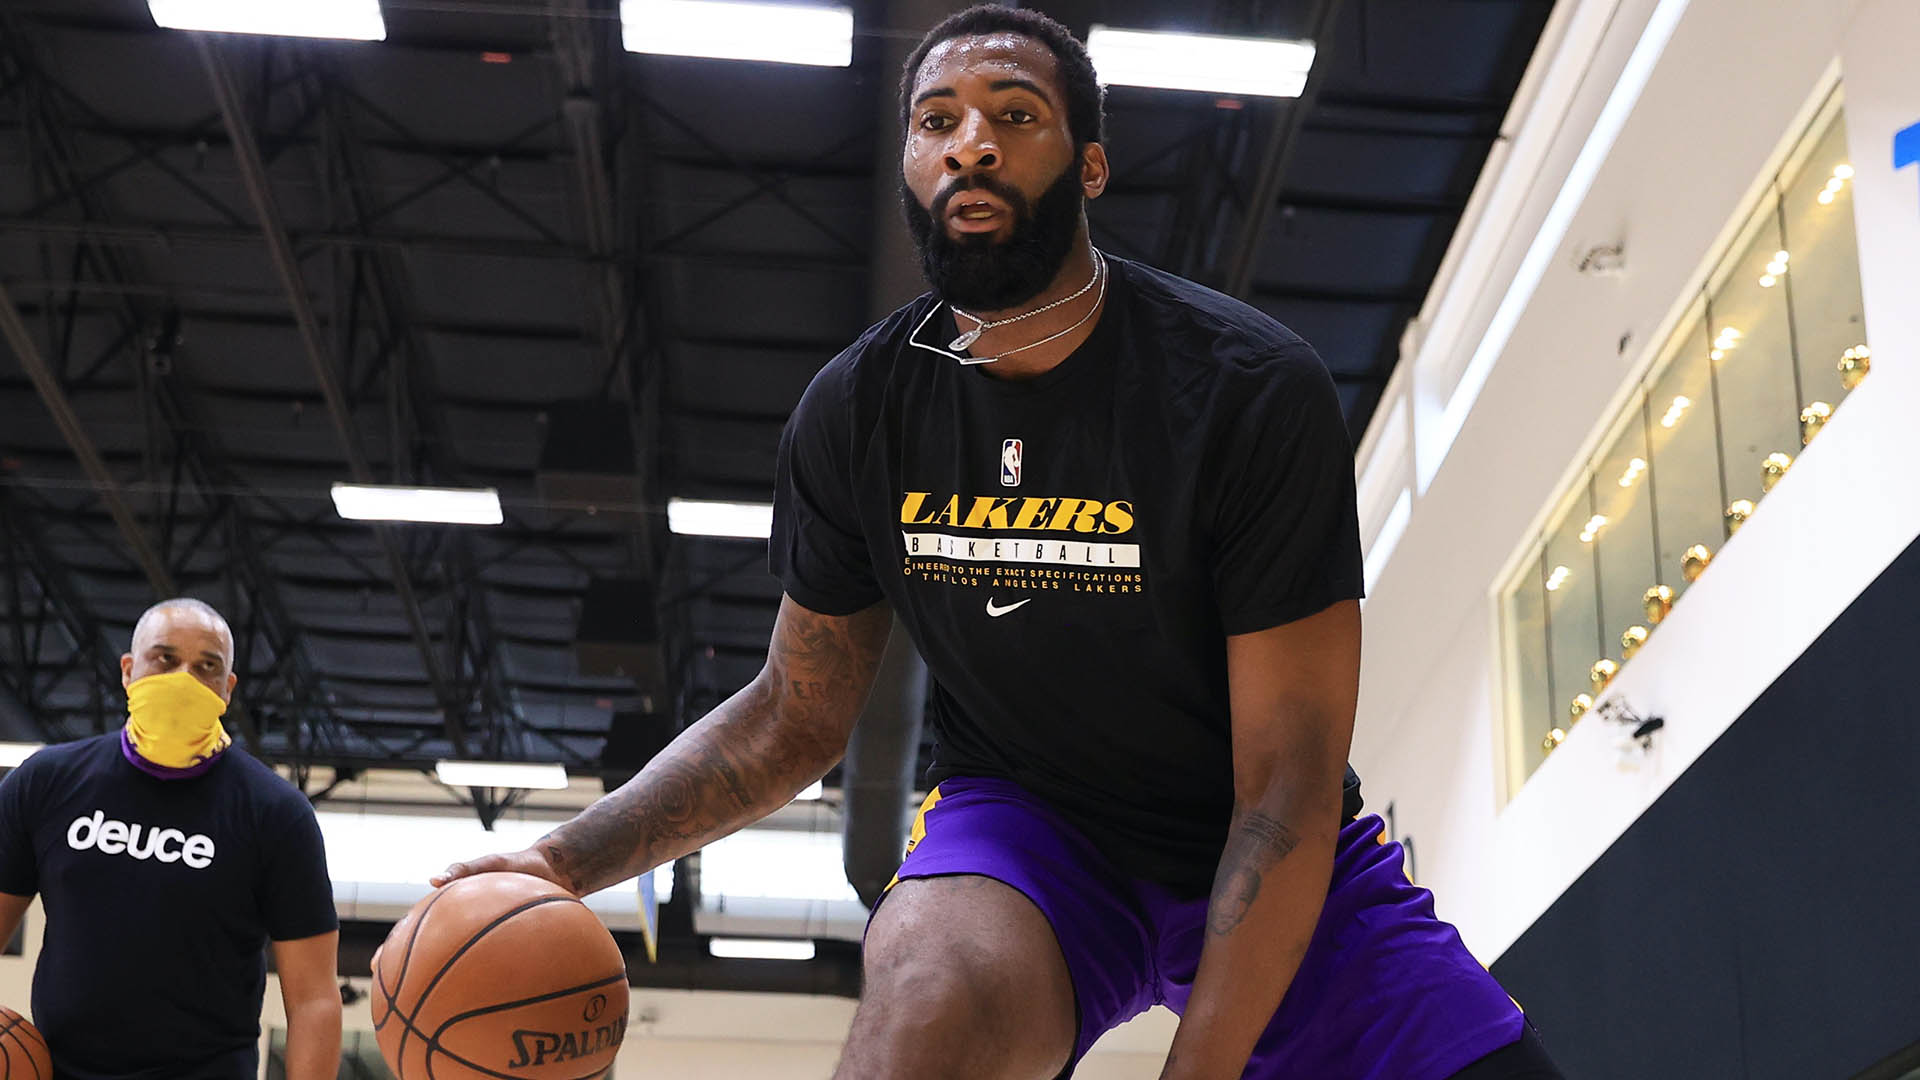 Andre Drummond to start in Lakers debut on Wednesday | NBA.com